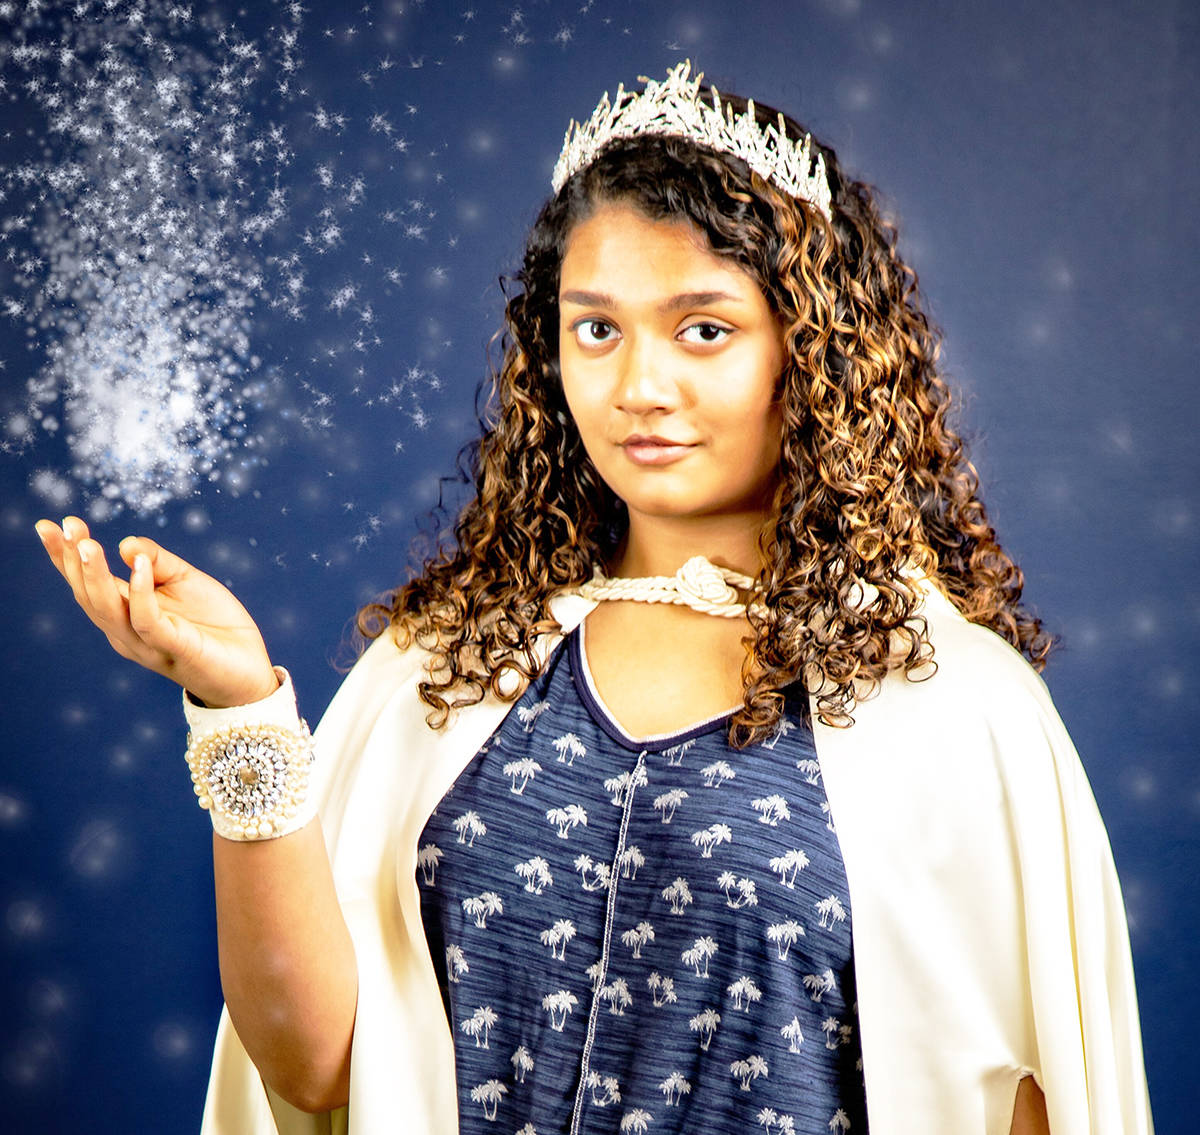 Alisha Pinto plays the titular role in Trinity Western University's production of the Snow Queen, which runs Nov. 19-30. (Photo: Jeff Gibbons)